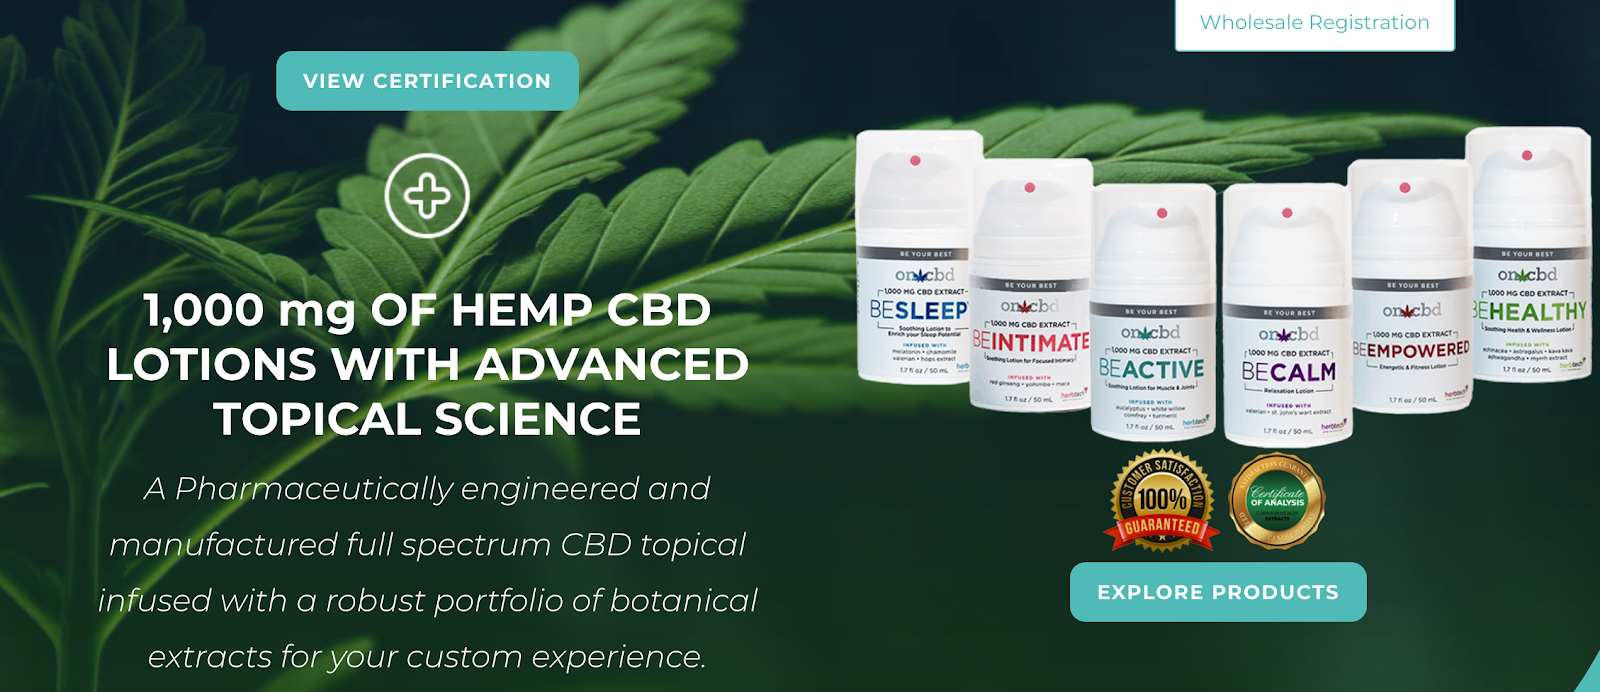 HerbTech Pharmaceuticals | Hemp CBD Lotions